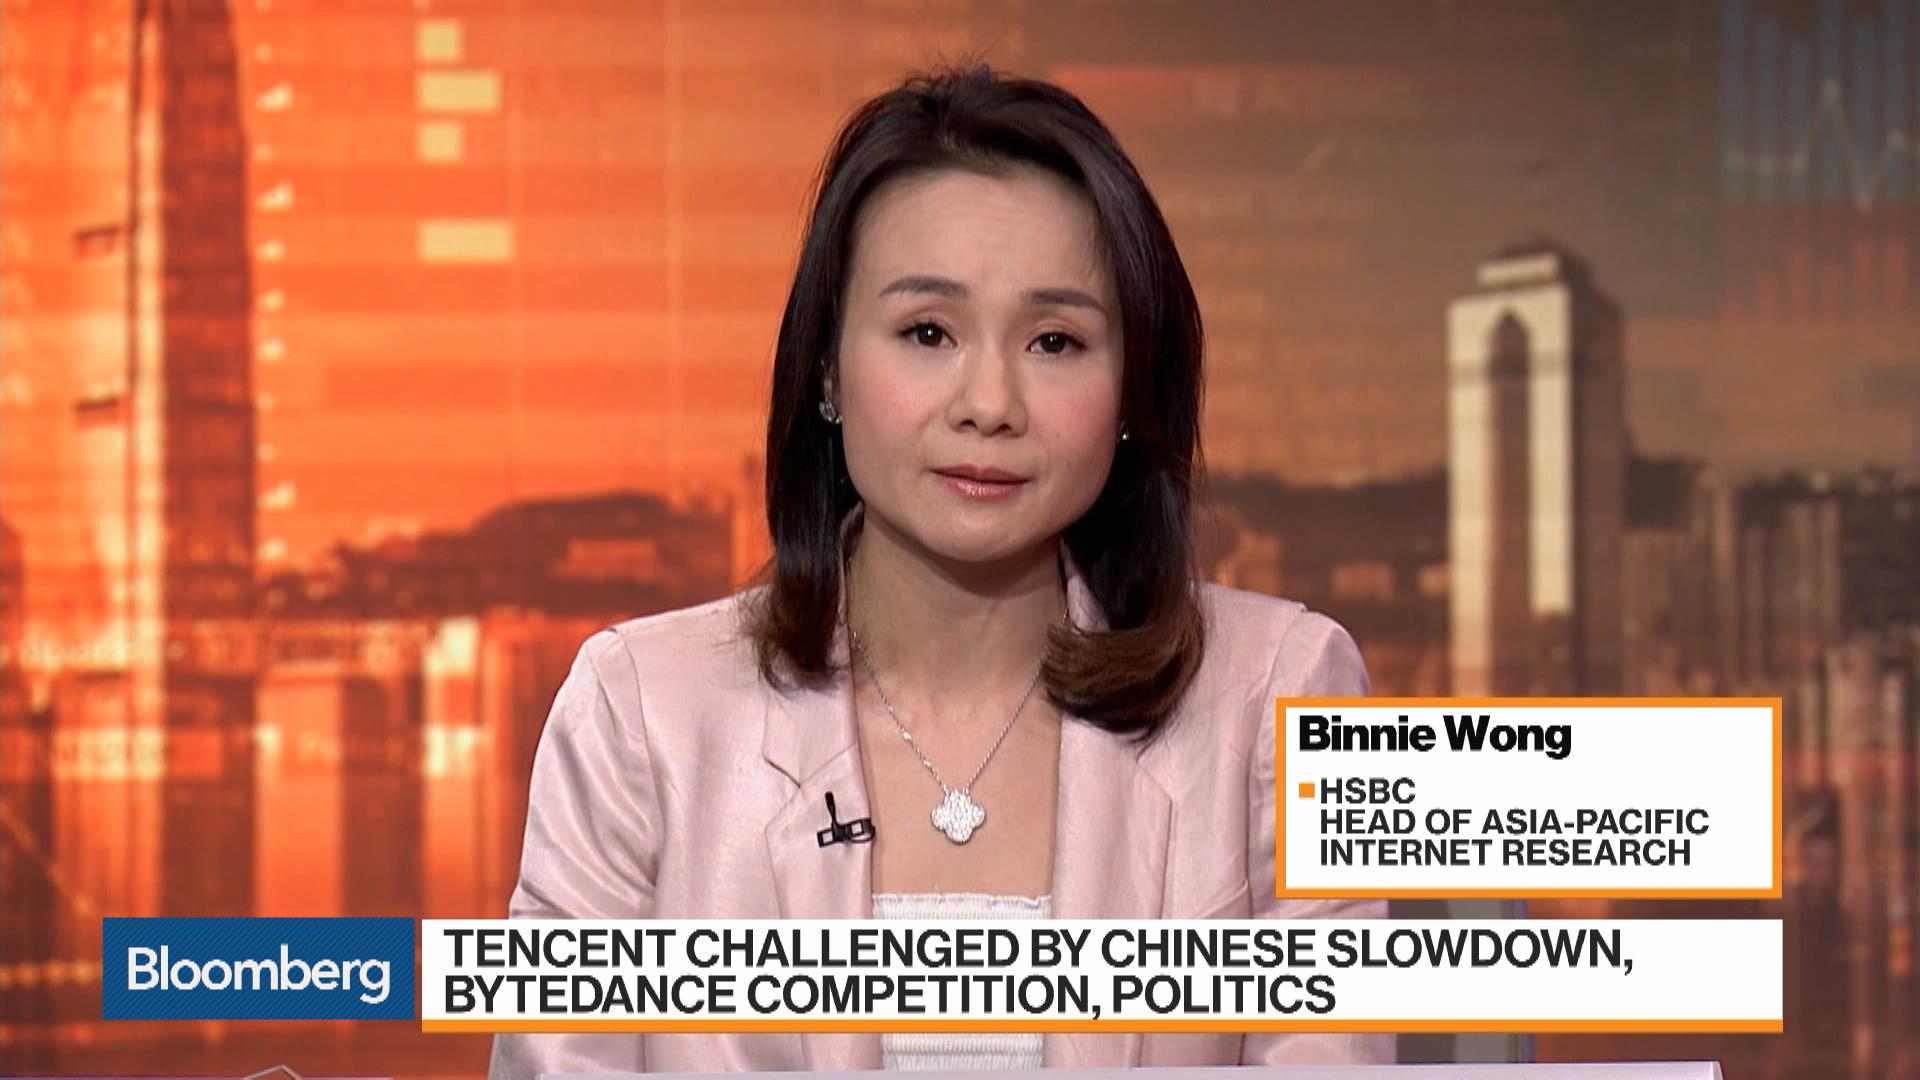 Tencent Rated 'Buy' by Binnie Wong, head of Asia-Pacific internet research at HSBC Holdings,